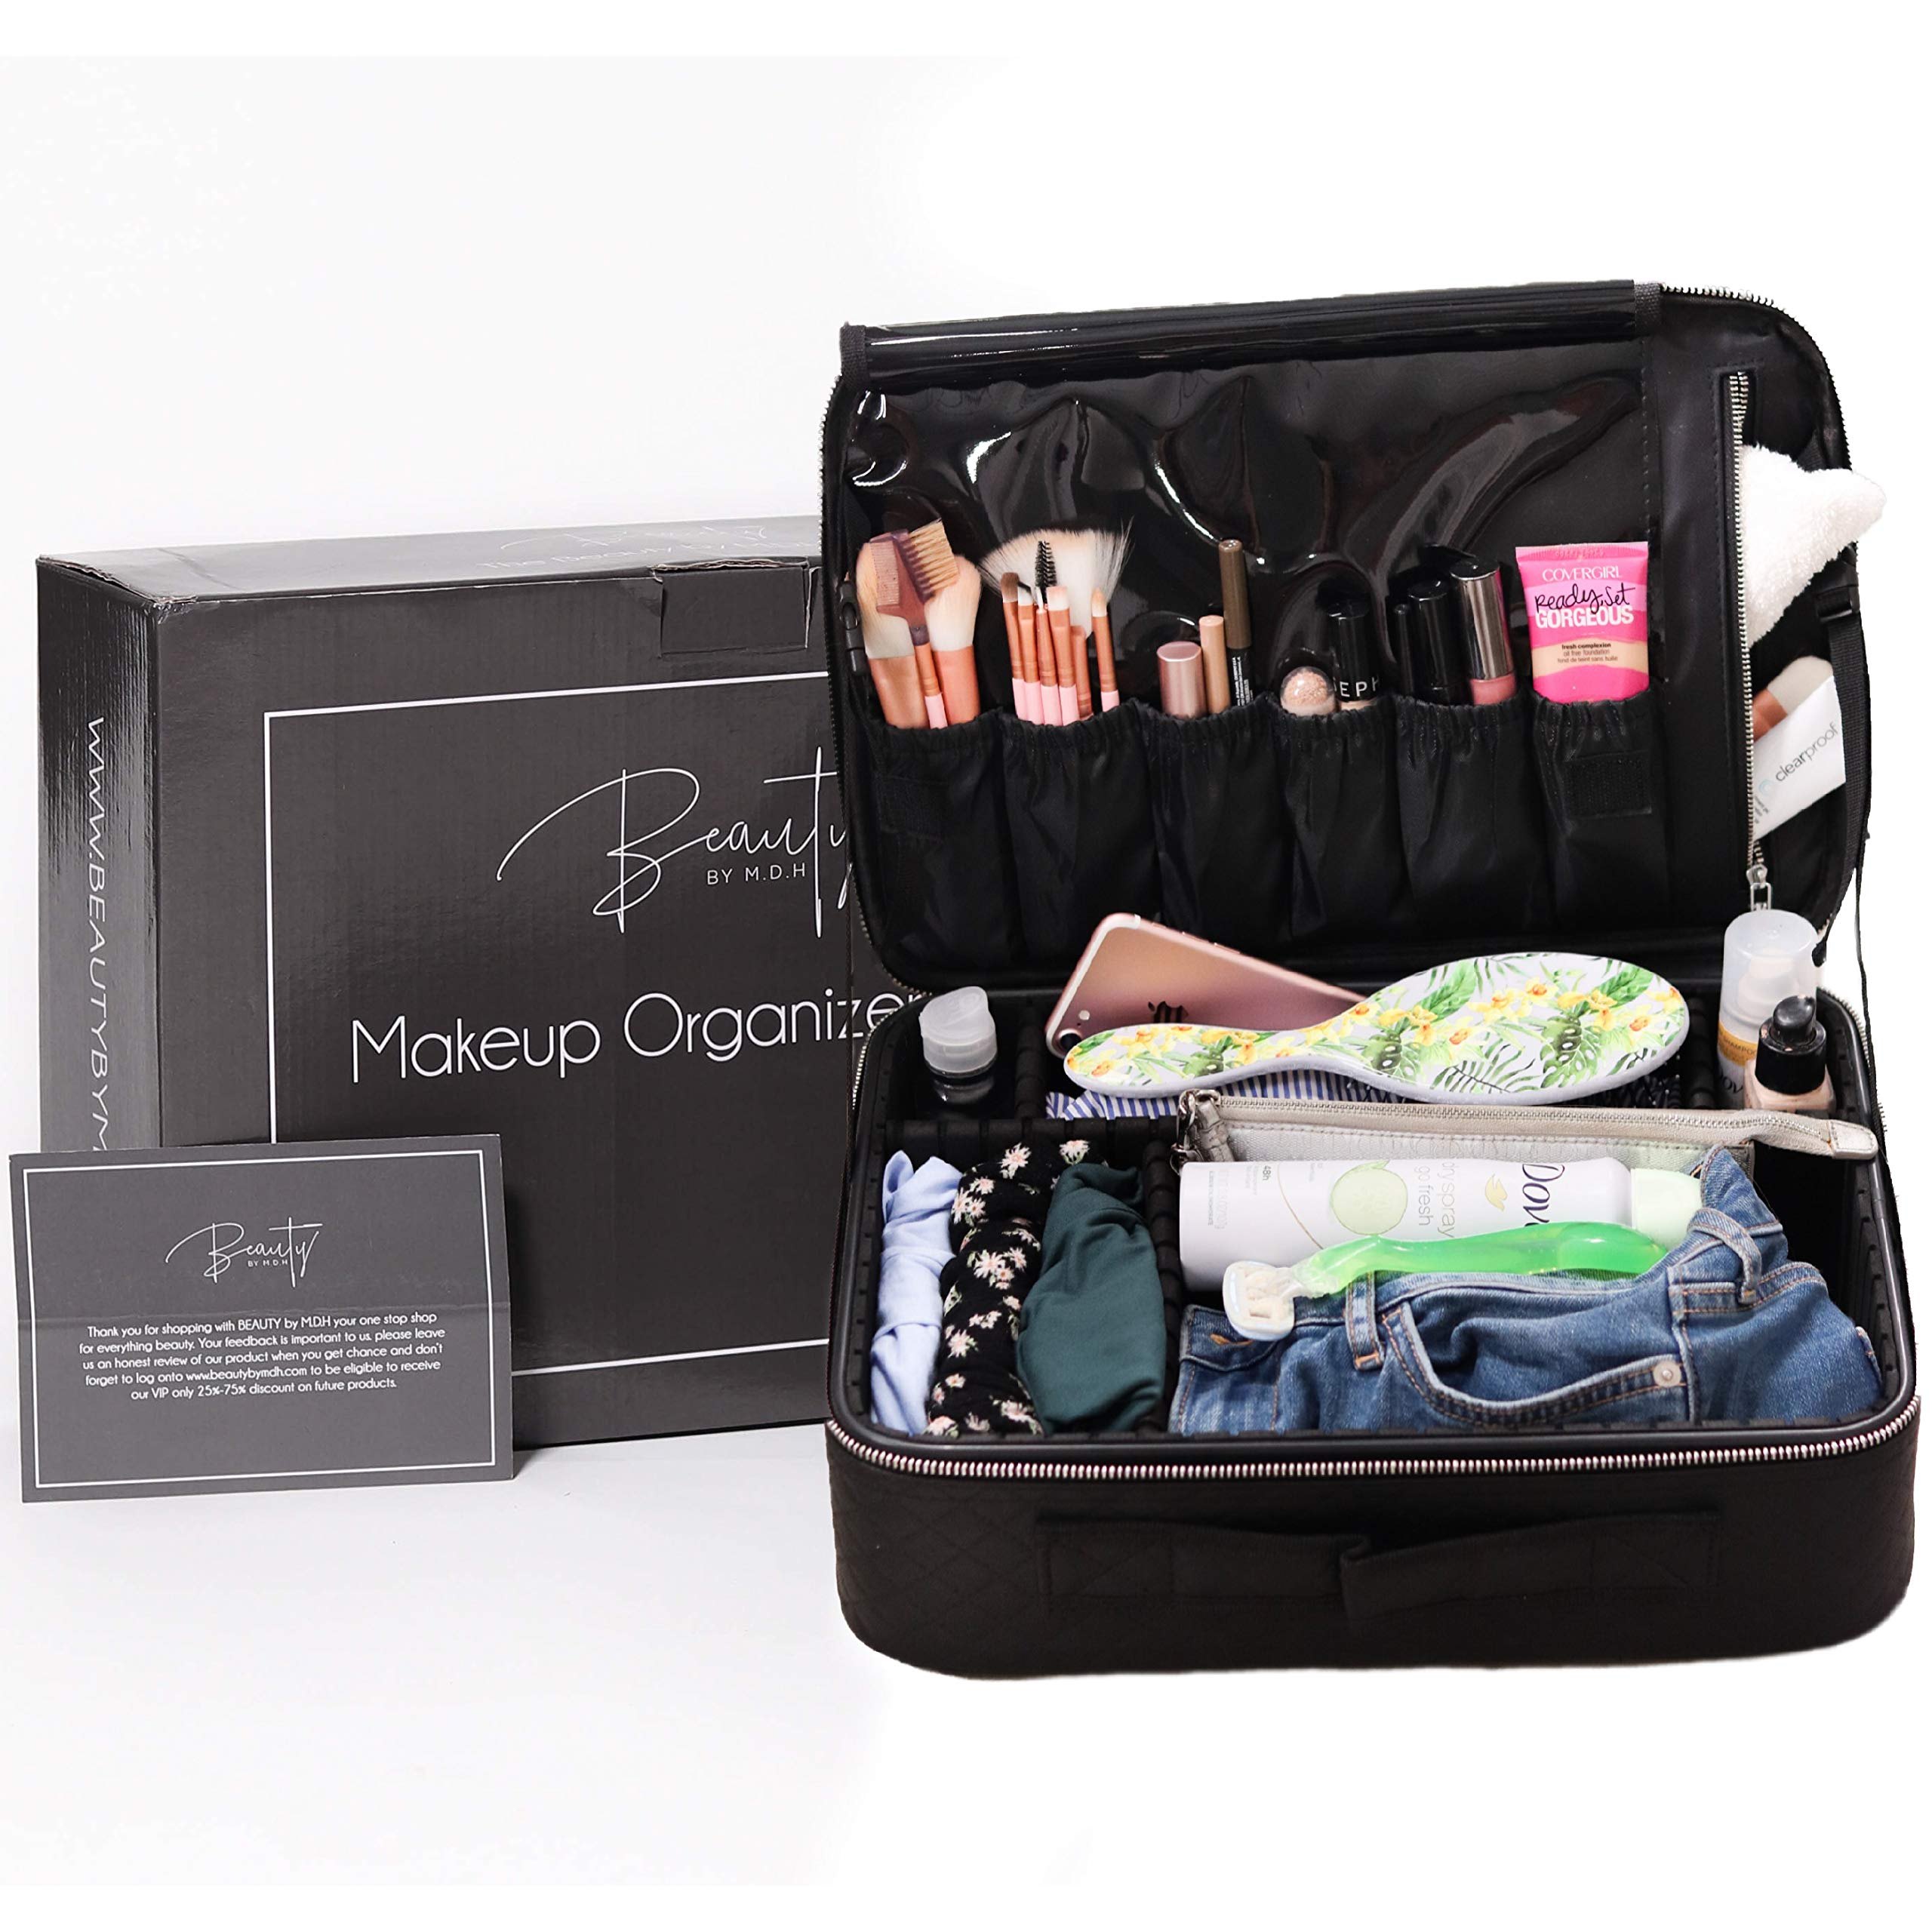 2776c9e835c4 Travel Makeup Train Case by Beauty by MDH - Professional Artist ...